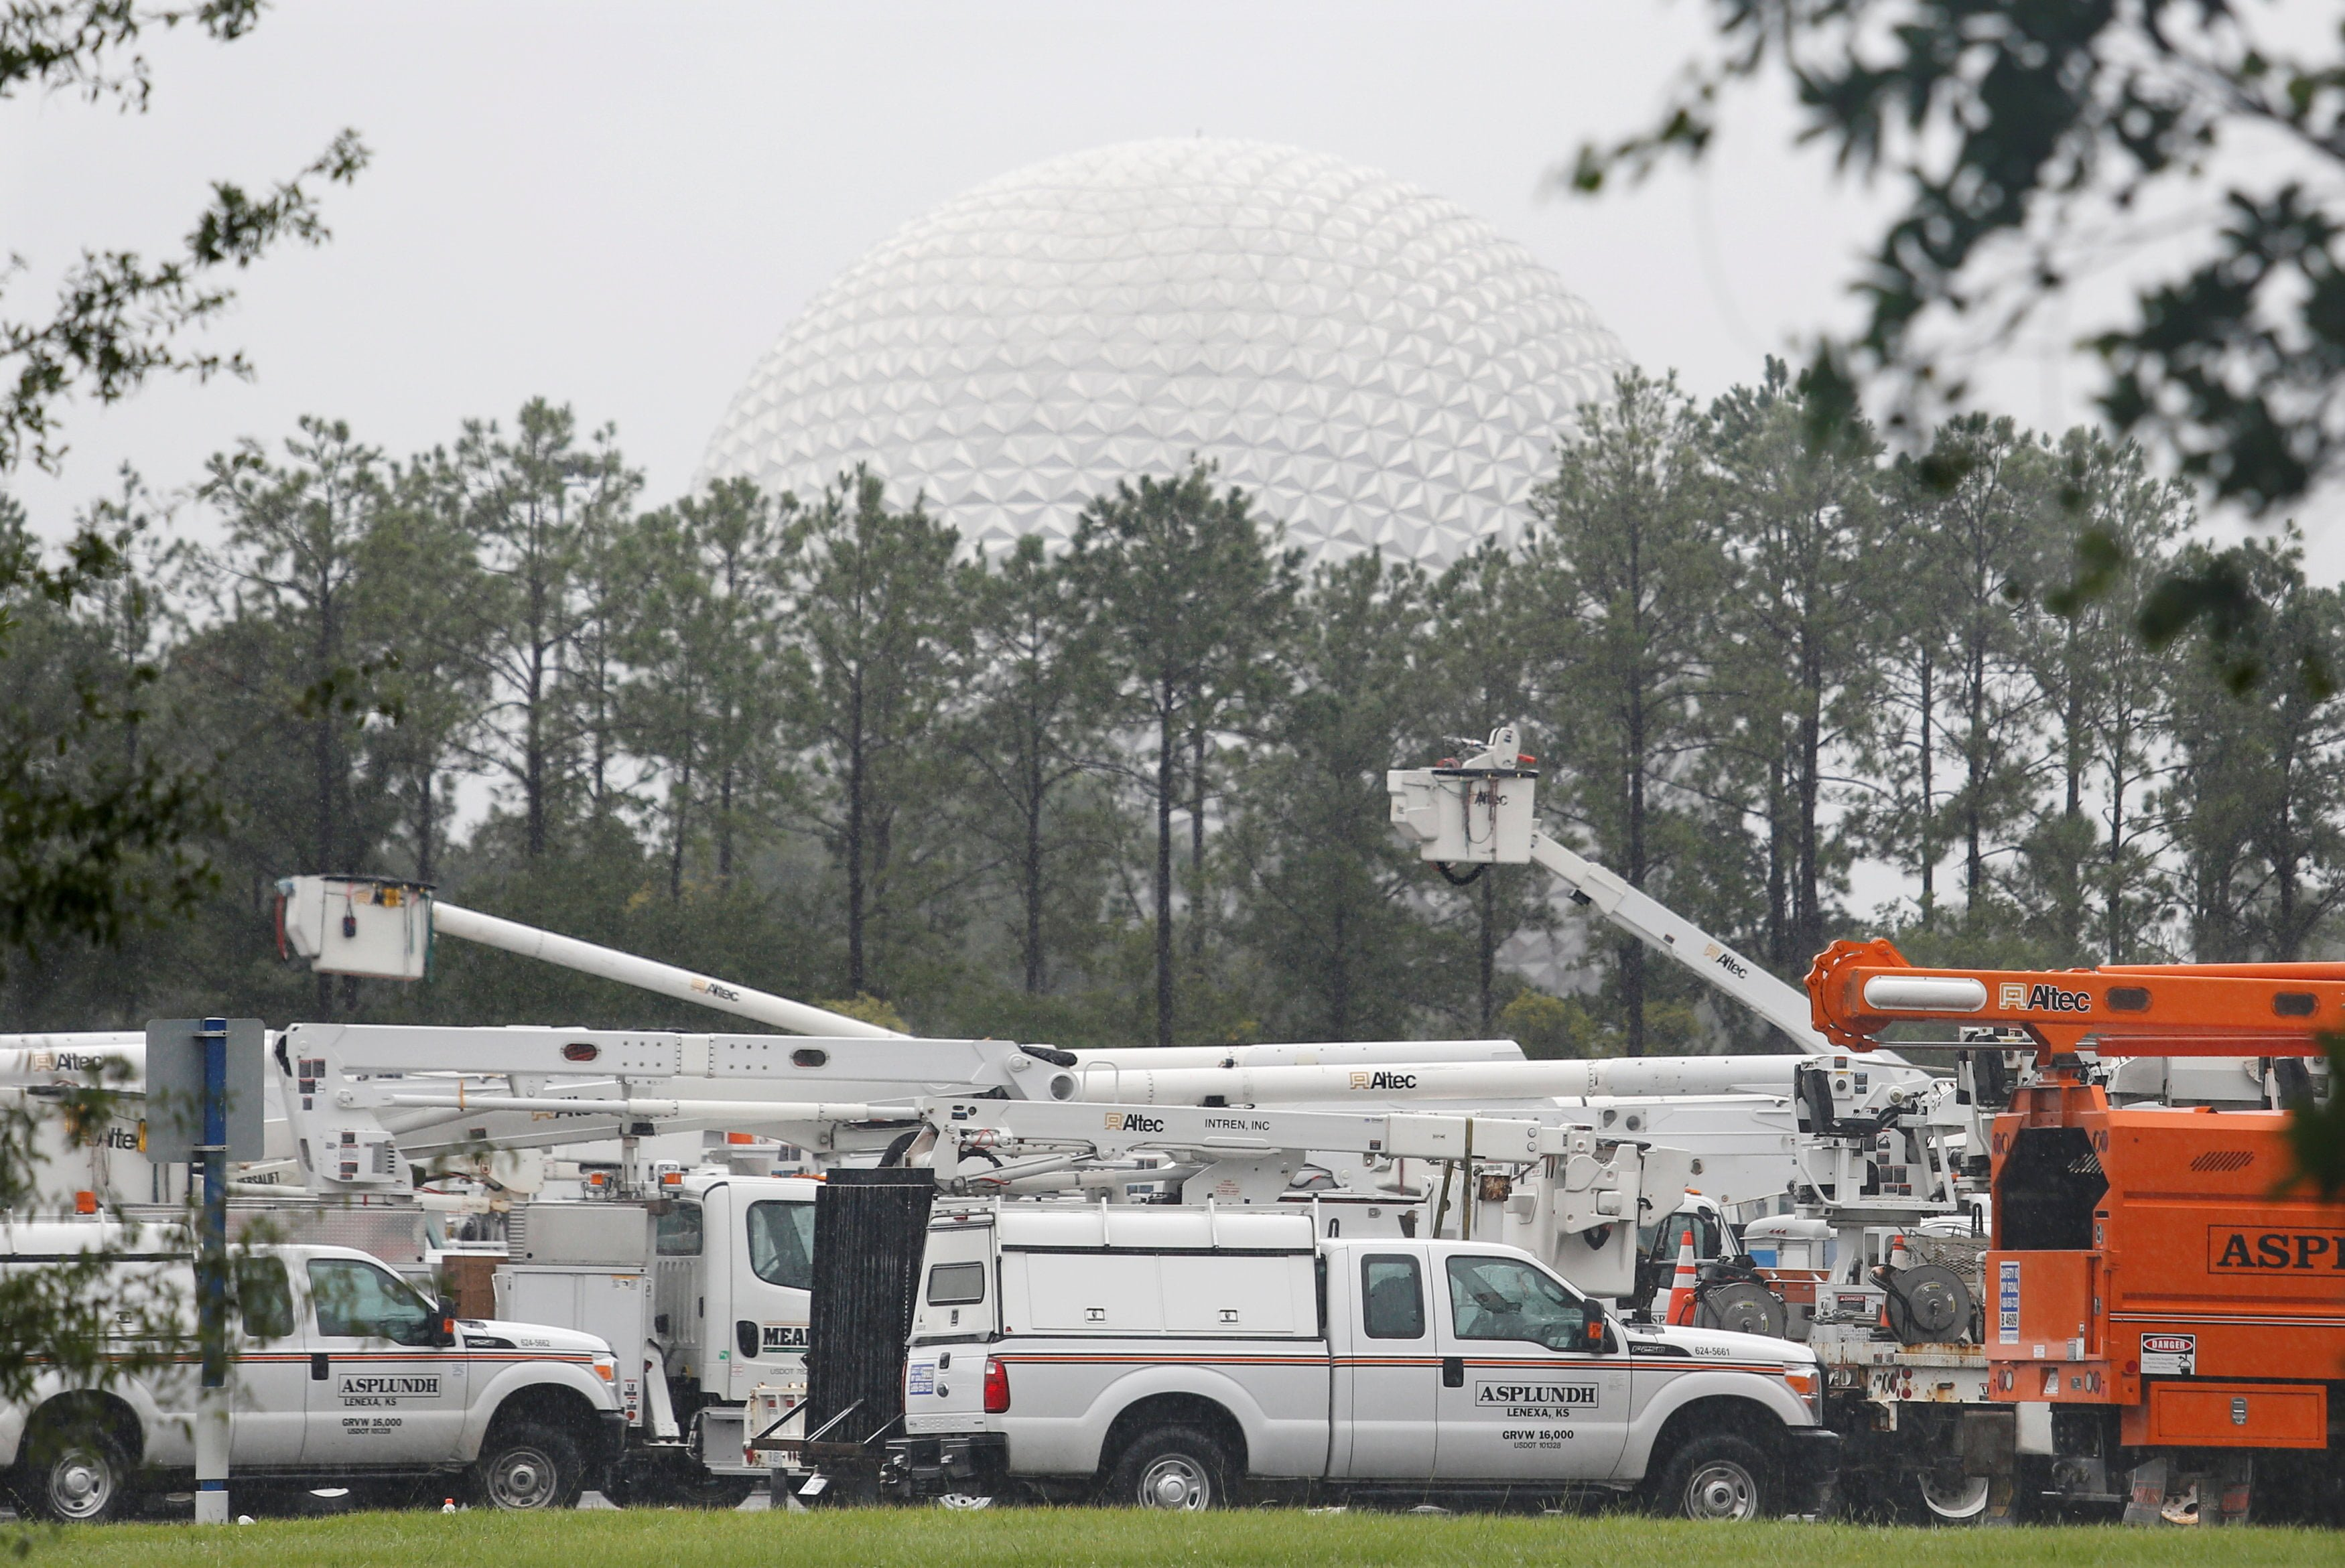 A fleet of utility trucks is parked in a parking lot at Disney's Epcot theme park ahead of the arrival of Hurricane Irma in Kissimmee, Florida